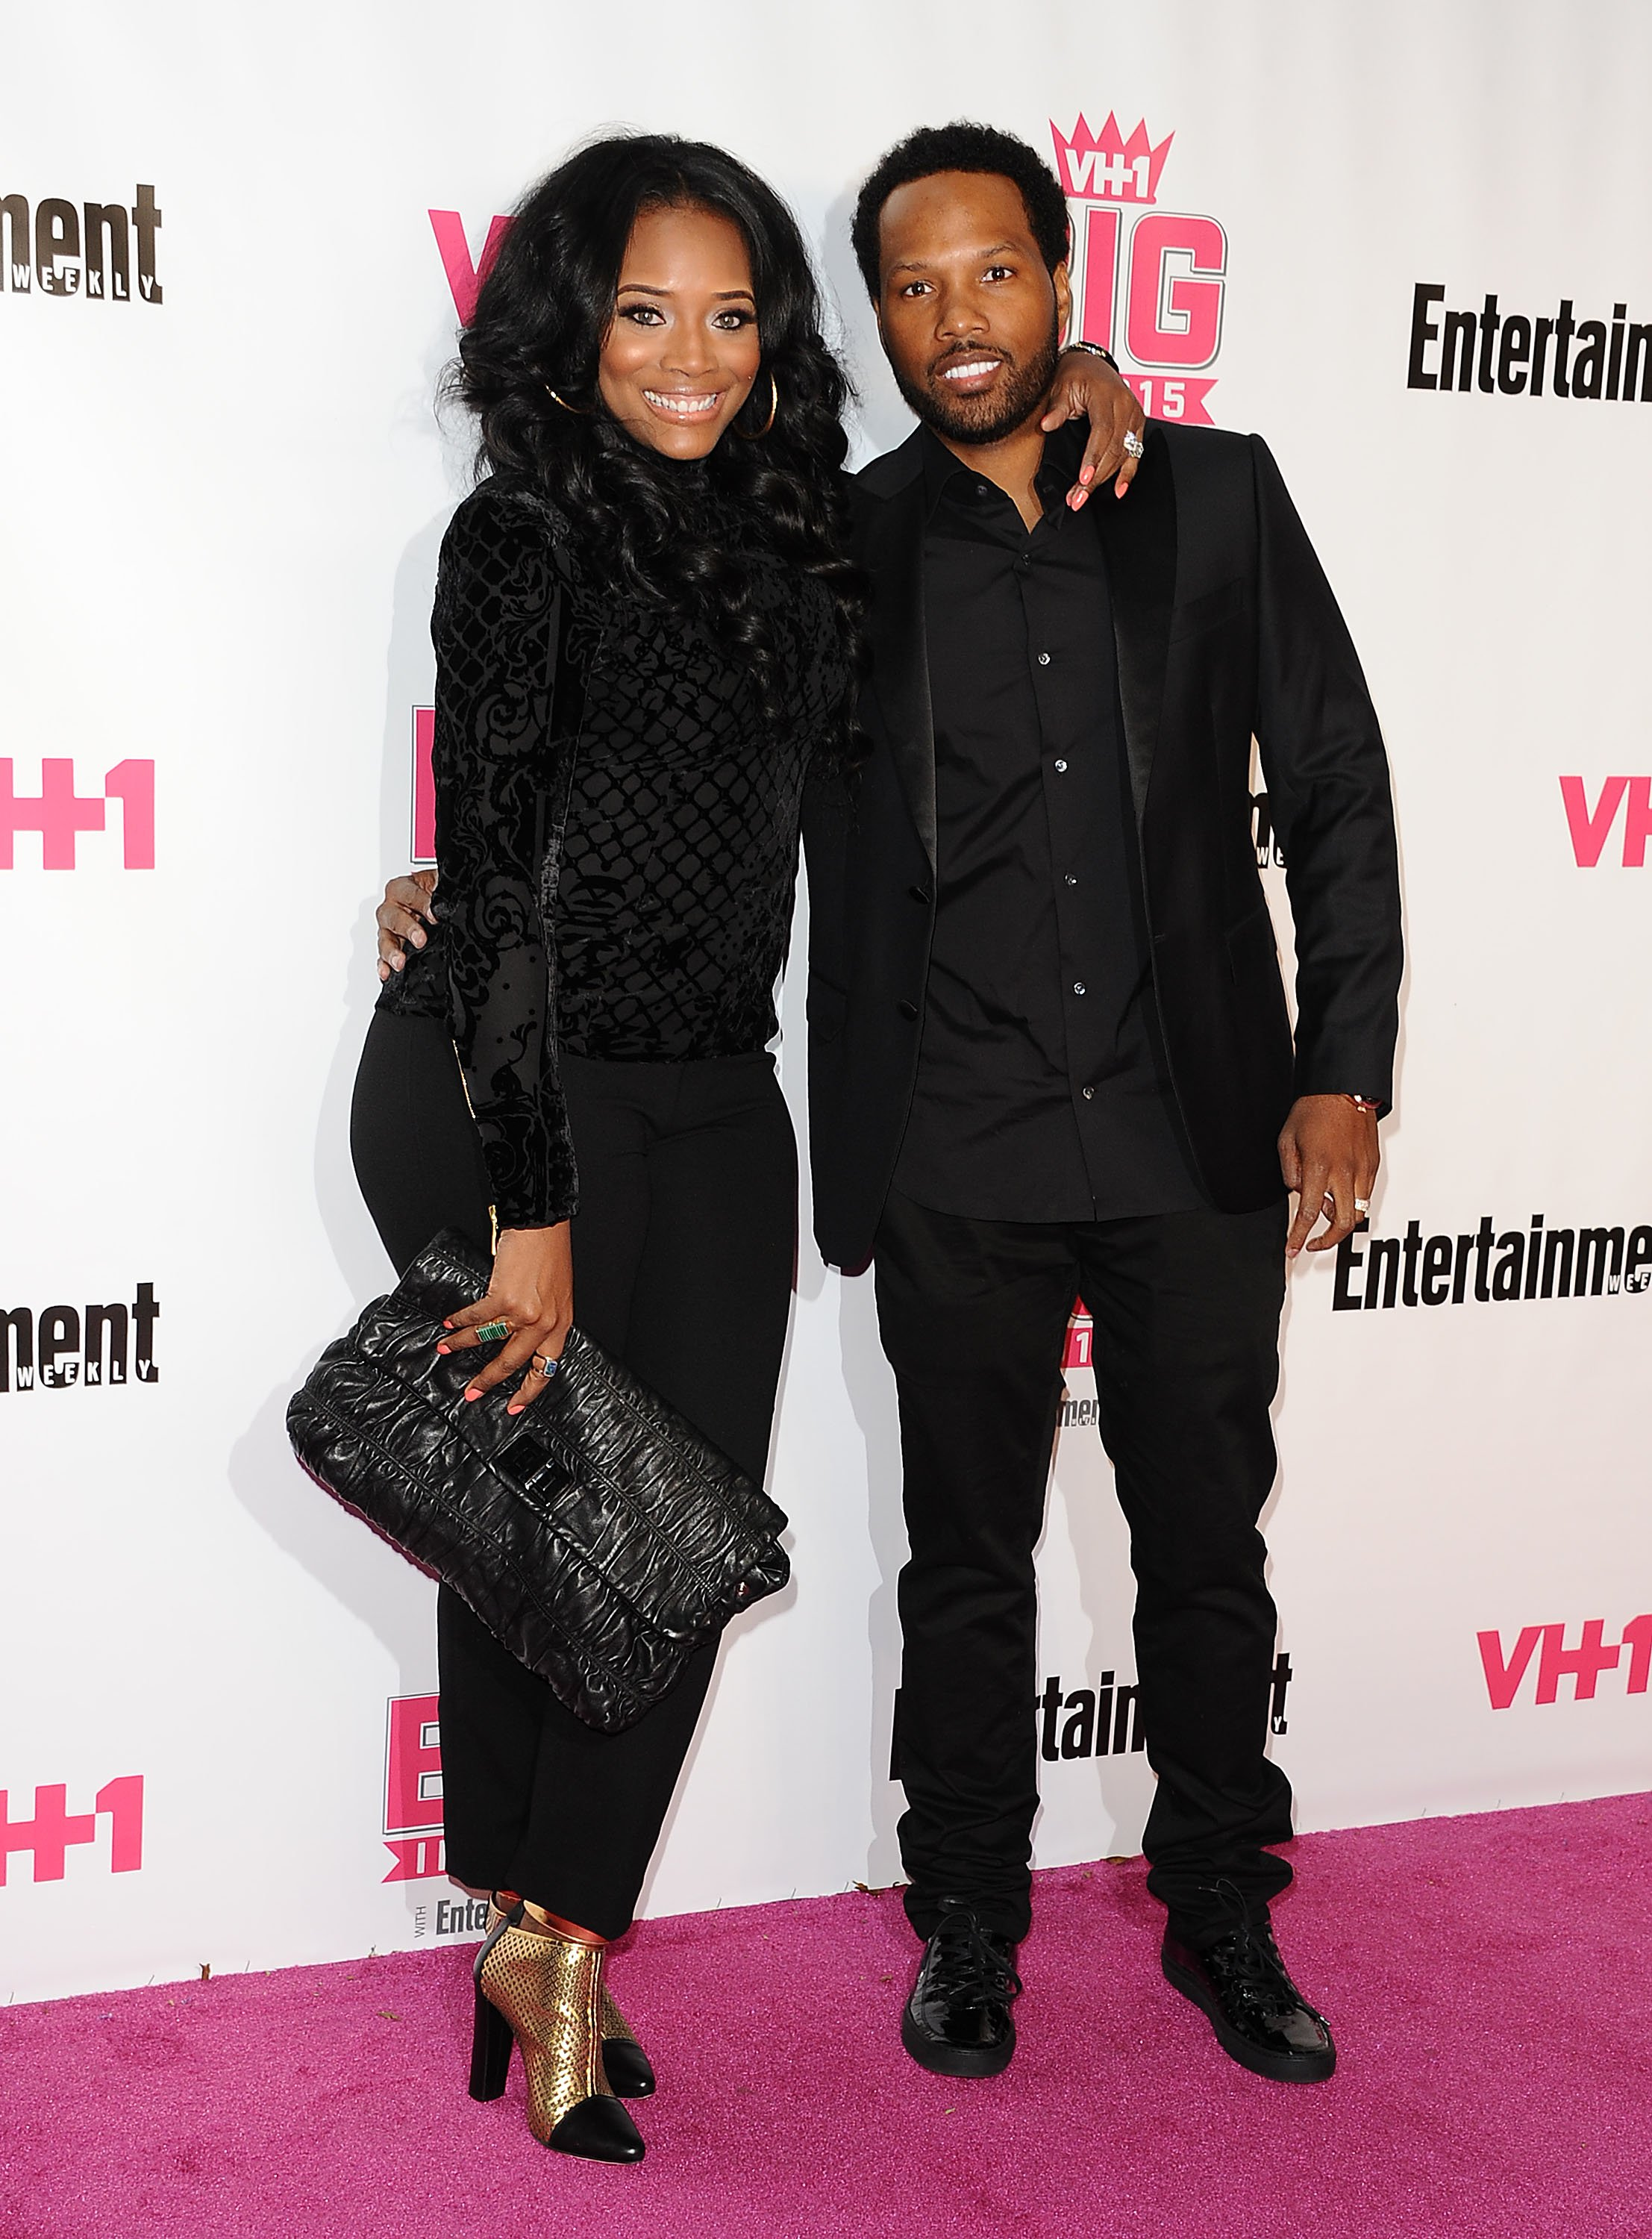 Yandy Smith Harris and Mendeecees Harris at the VH1 Big In 2015 with Entertainment Weekly Awards on Nov. 15, 2015 in California | Photo: Getty Images